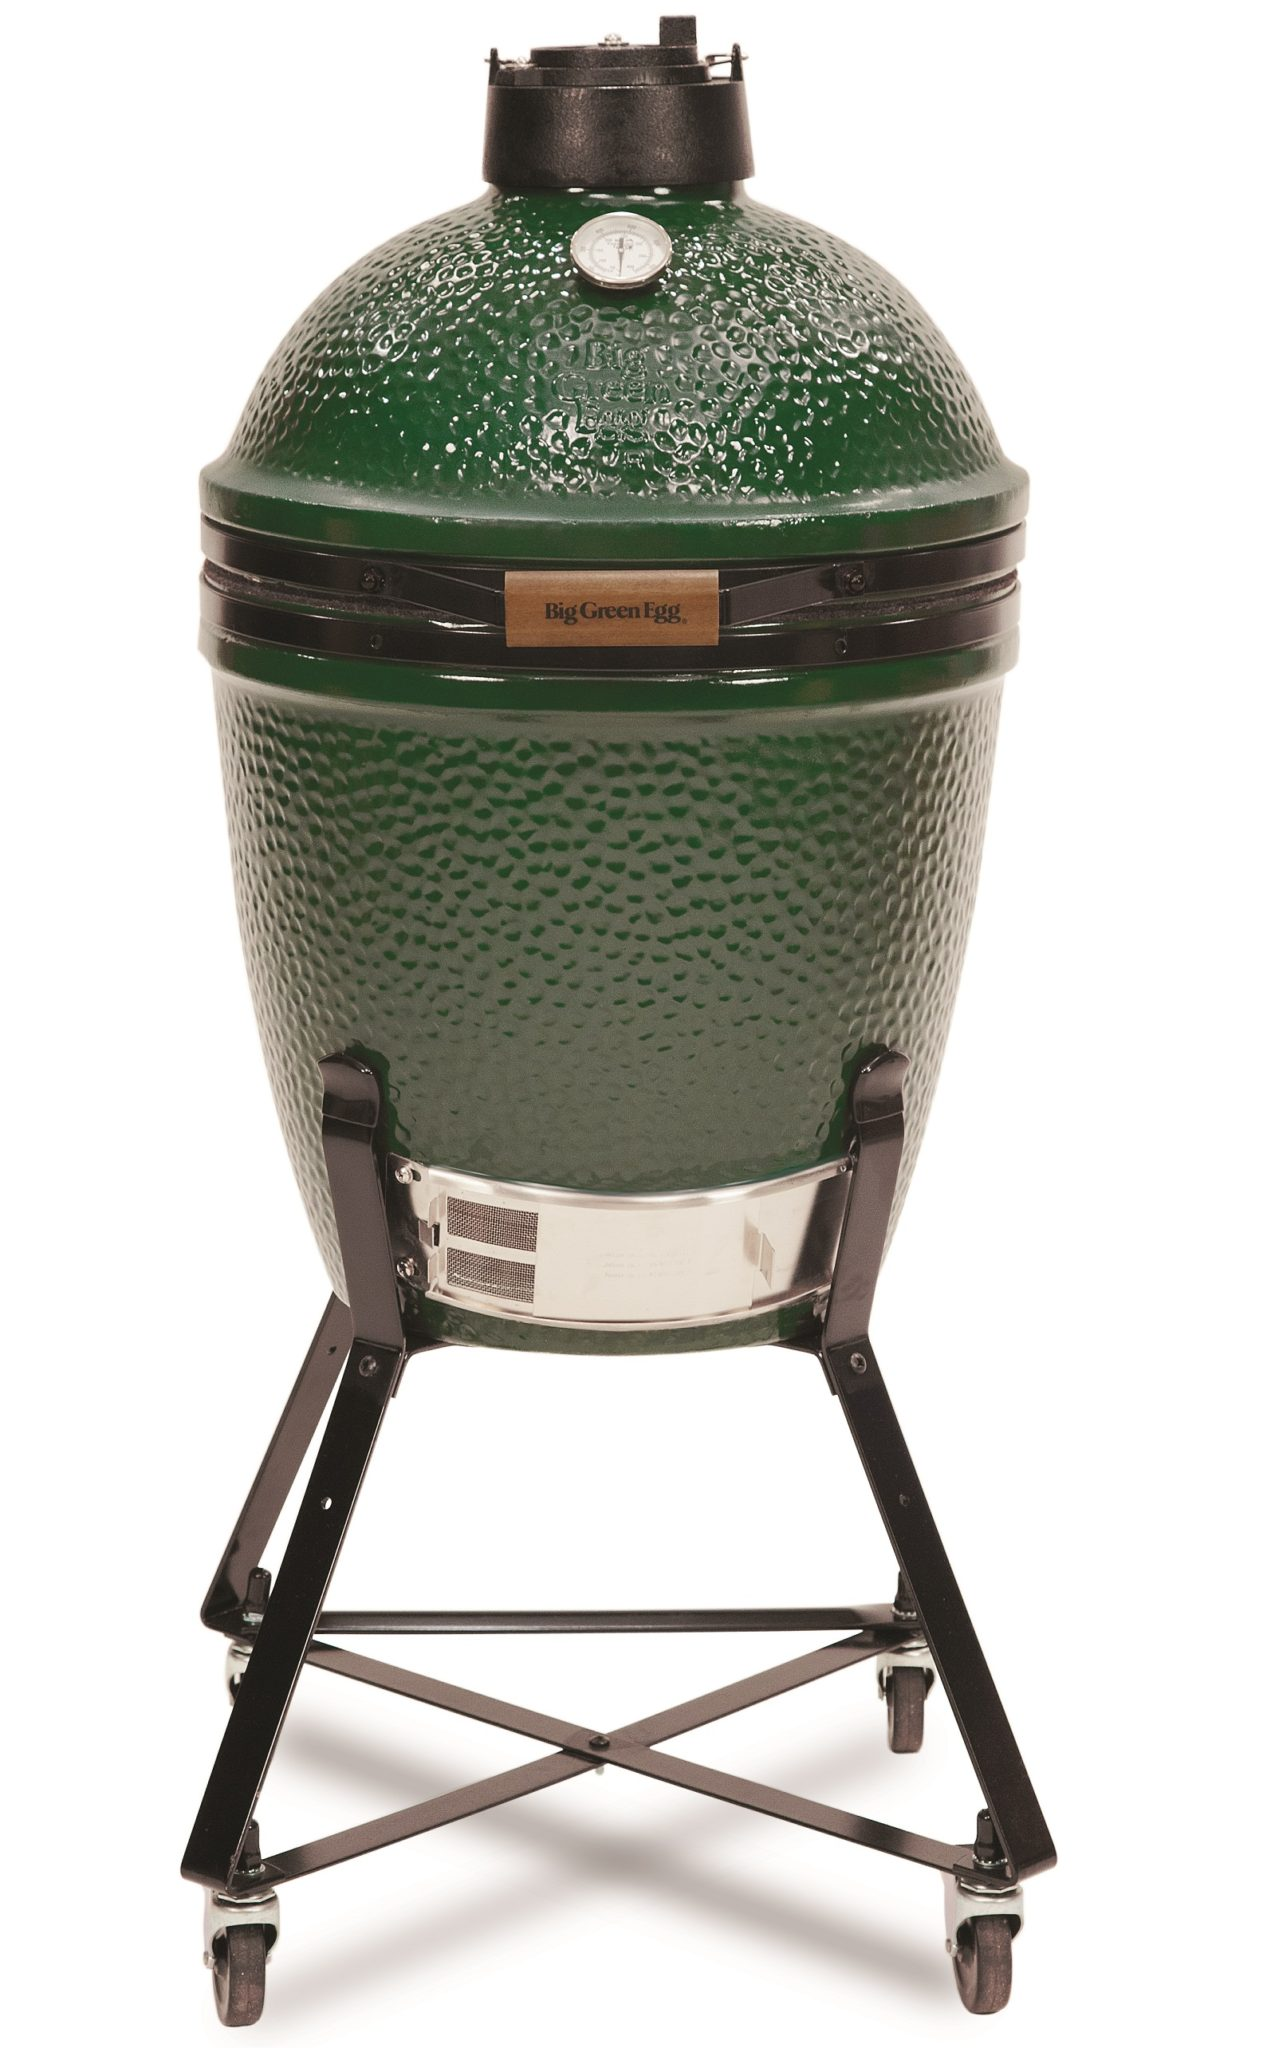 Big Green Egg Medium Kamado Grill